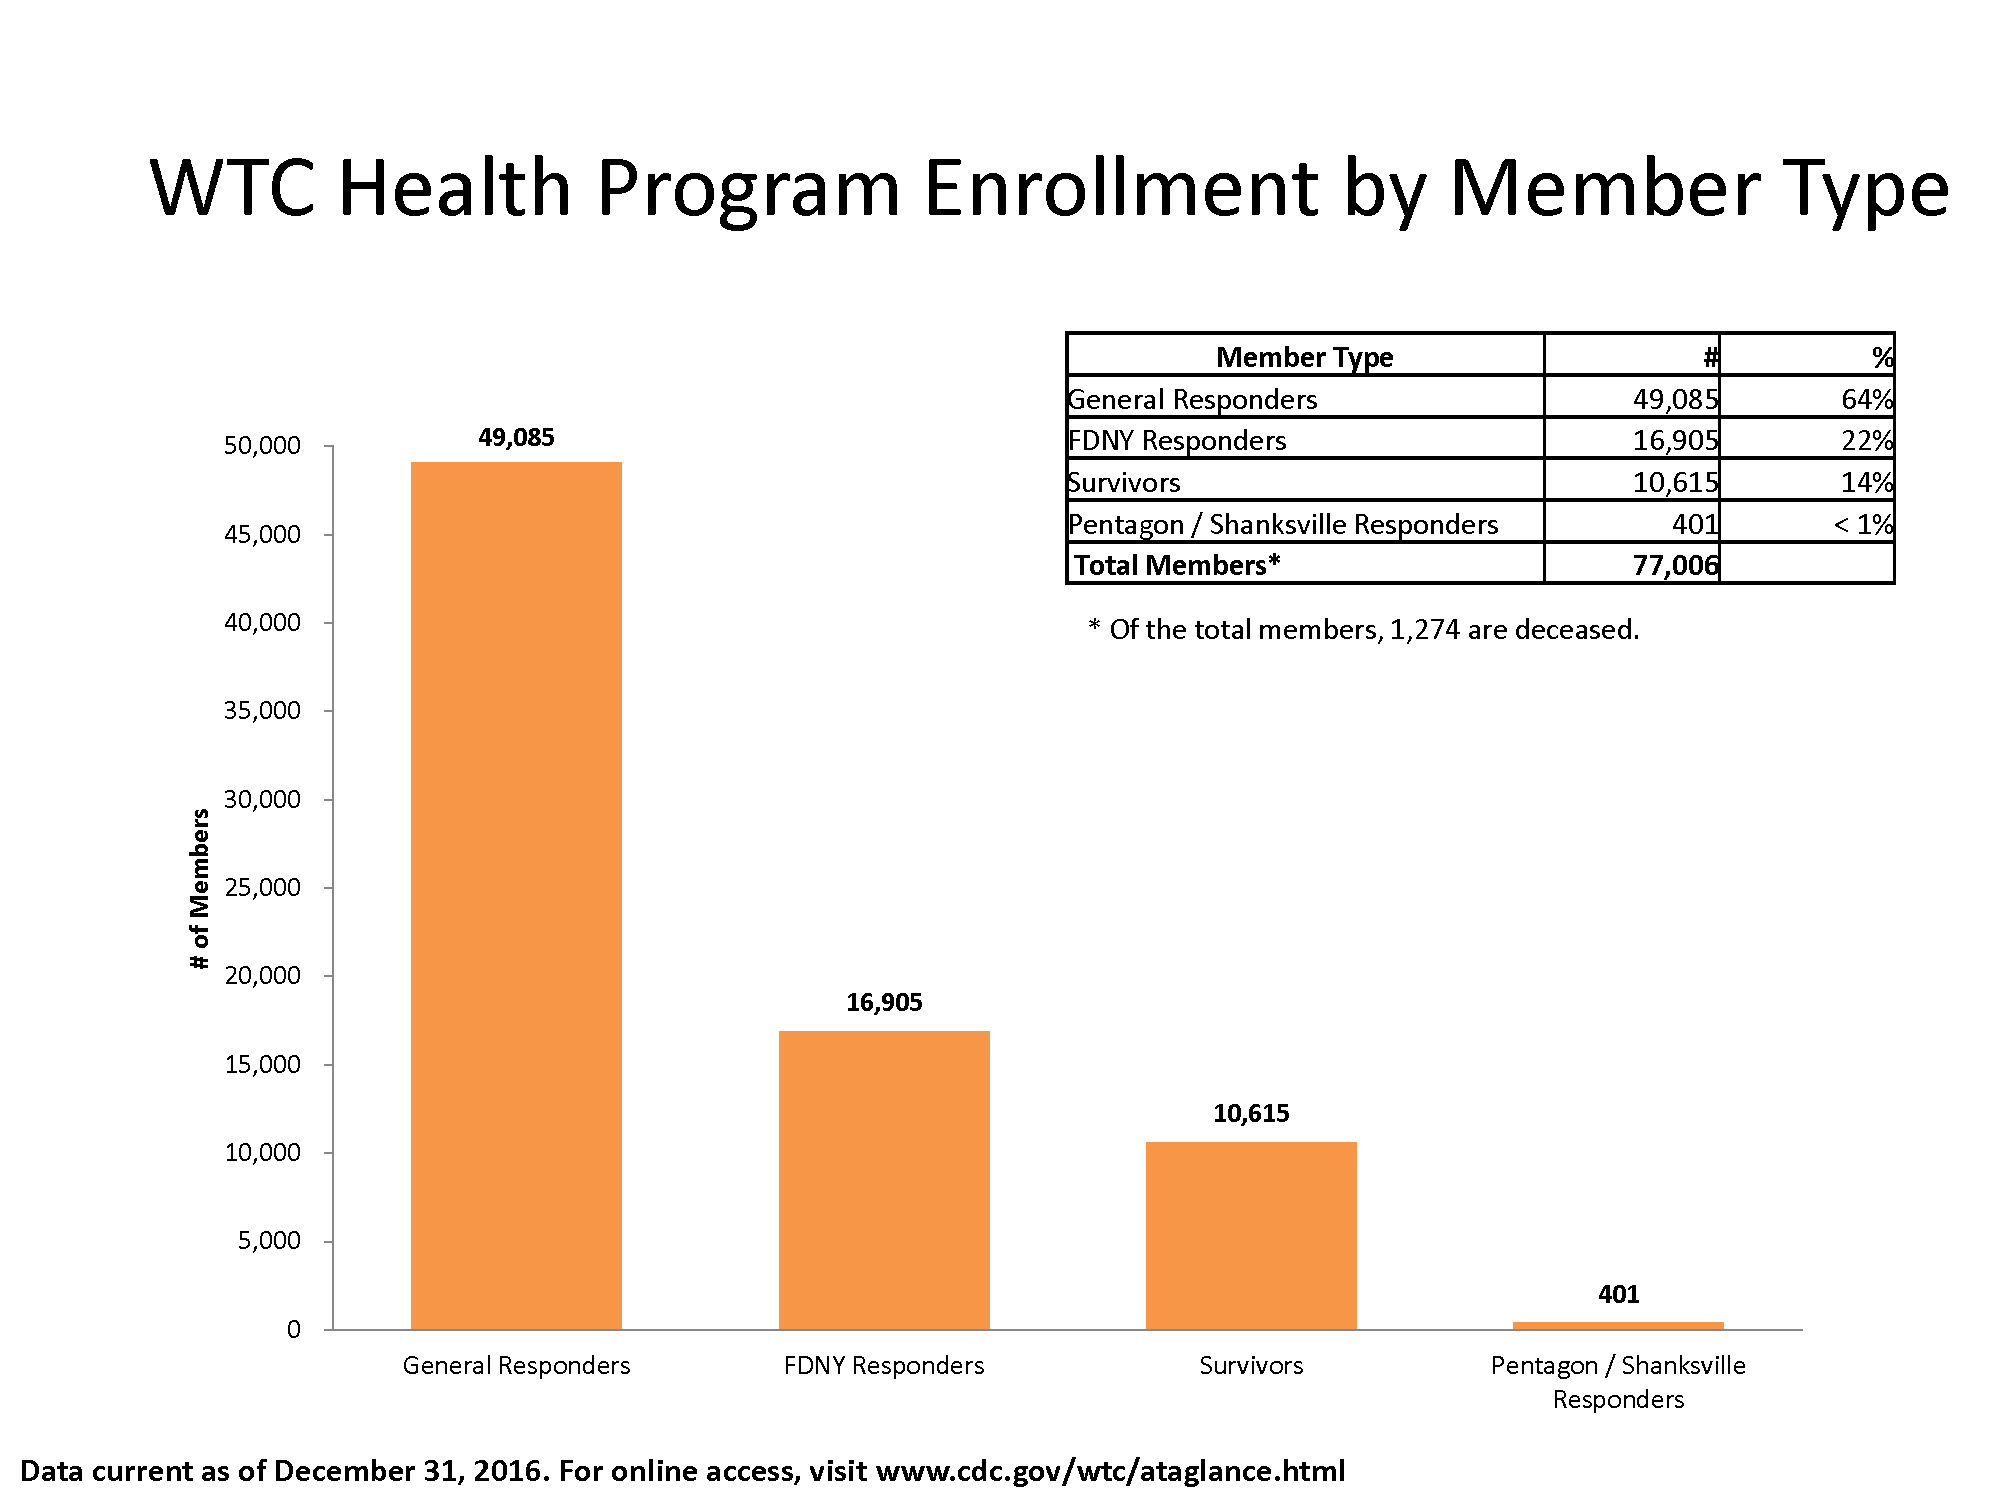 Bar chart of data in table showing enrollment by member type.